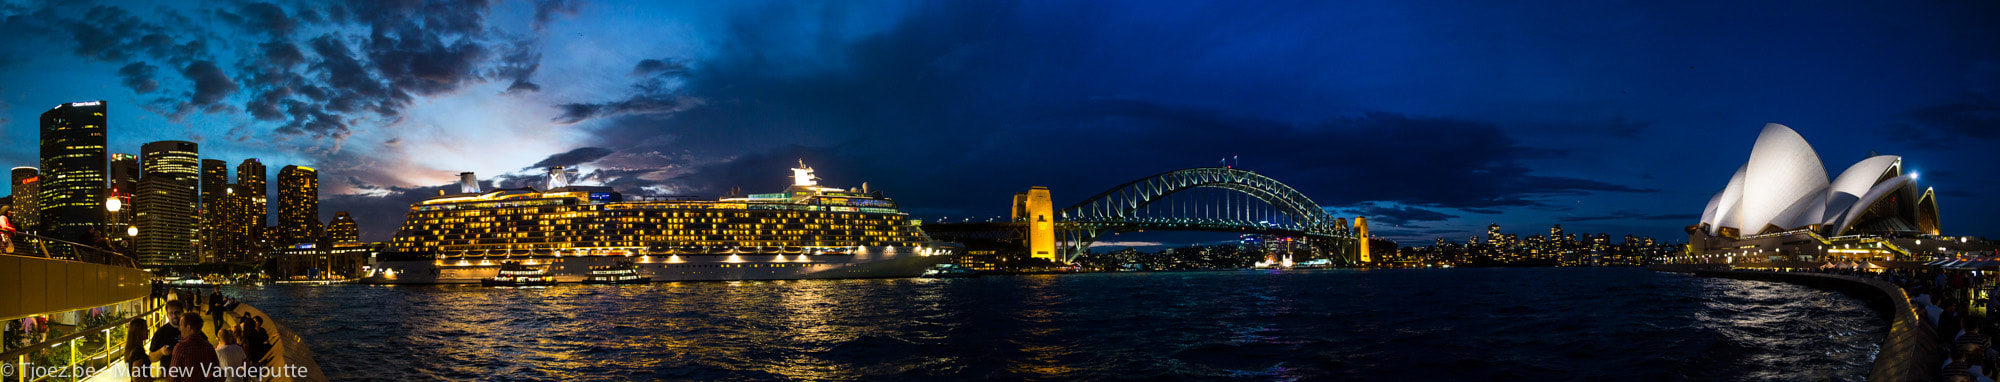 Photograph Sydney Circular Quay Panoramic by Matthew Vandeputte on 500px